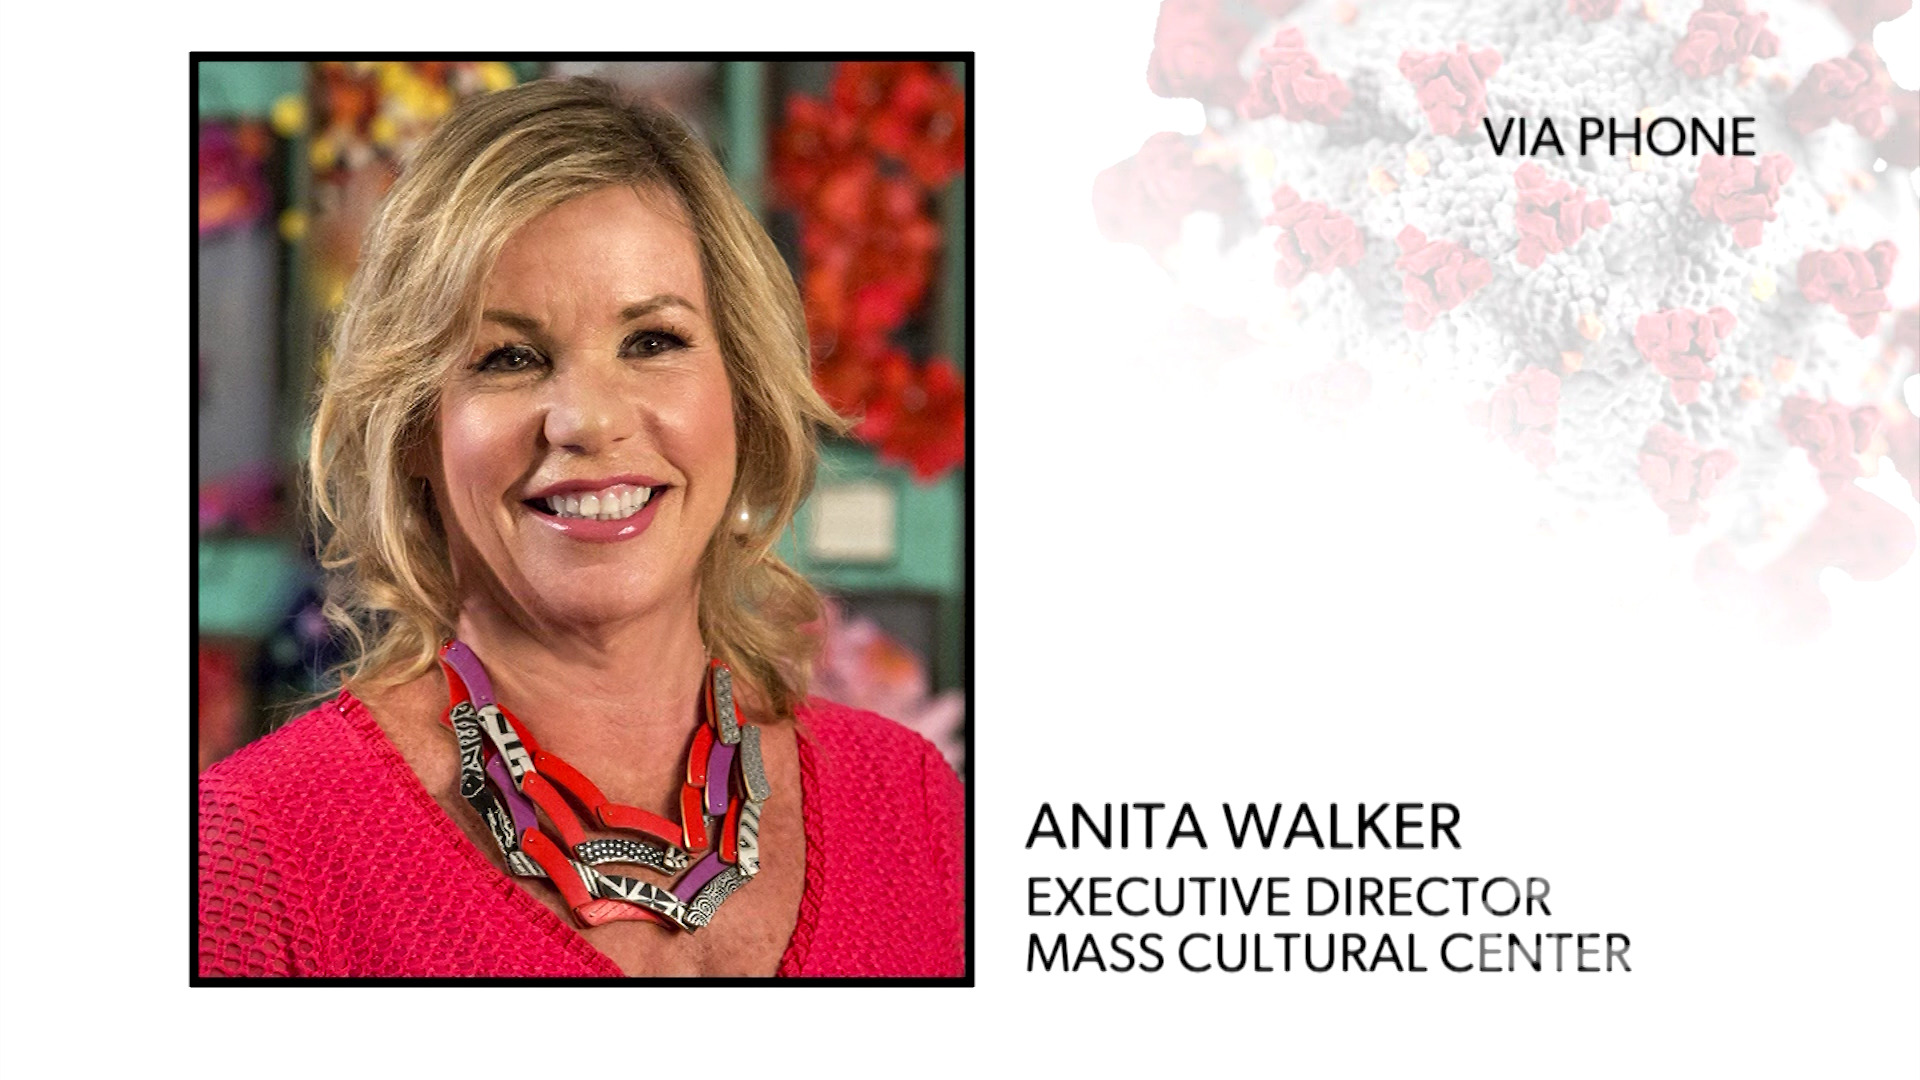 WATCH: Mass Cultural Council's Anita Walker discusses how COVID-19 impacts the arts, including the finanical implications.